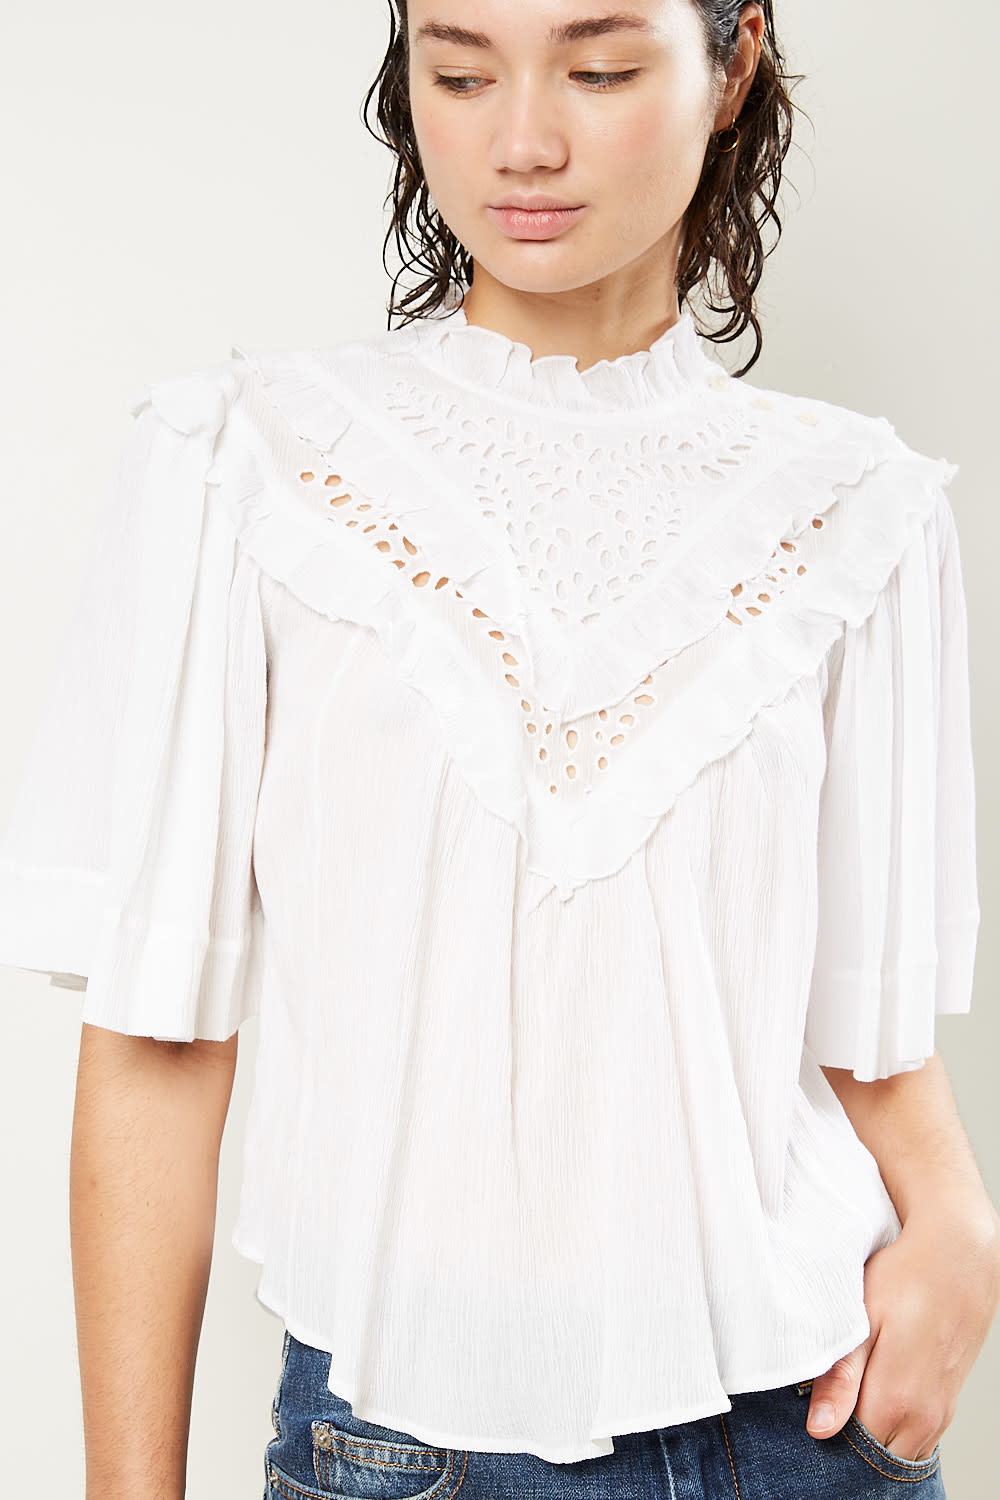 Etoile Isabel Marant - Idoa light embroidered top